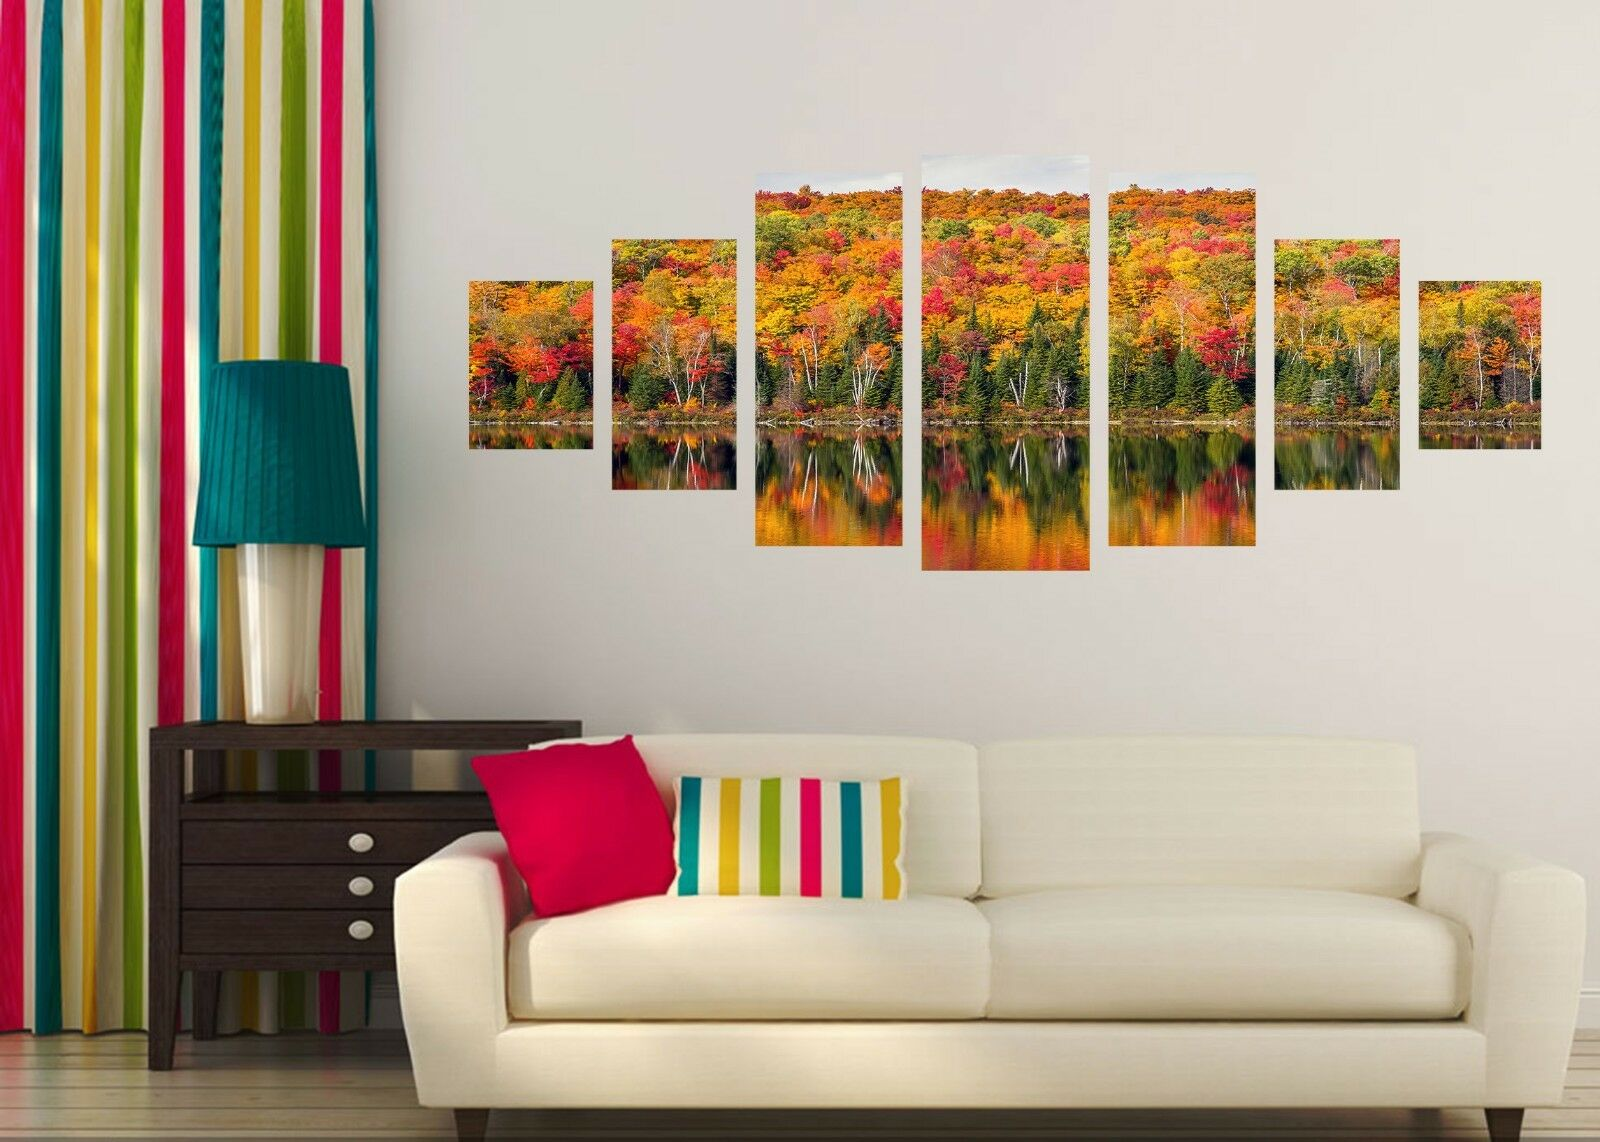 3D Autumn Landscape 667 Unframed Print Wall Paper Decal Wall Deco Indoor AJ Wall